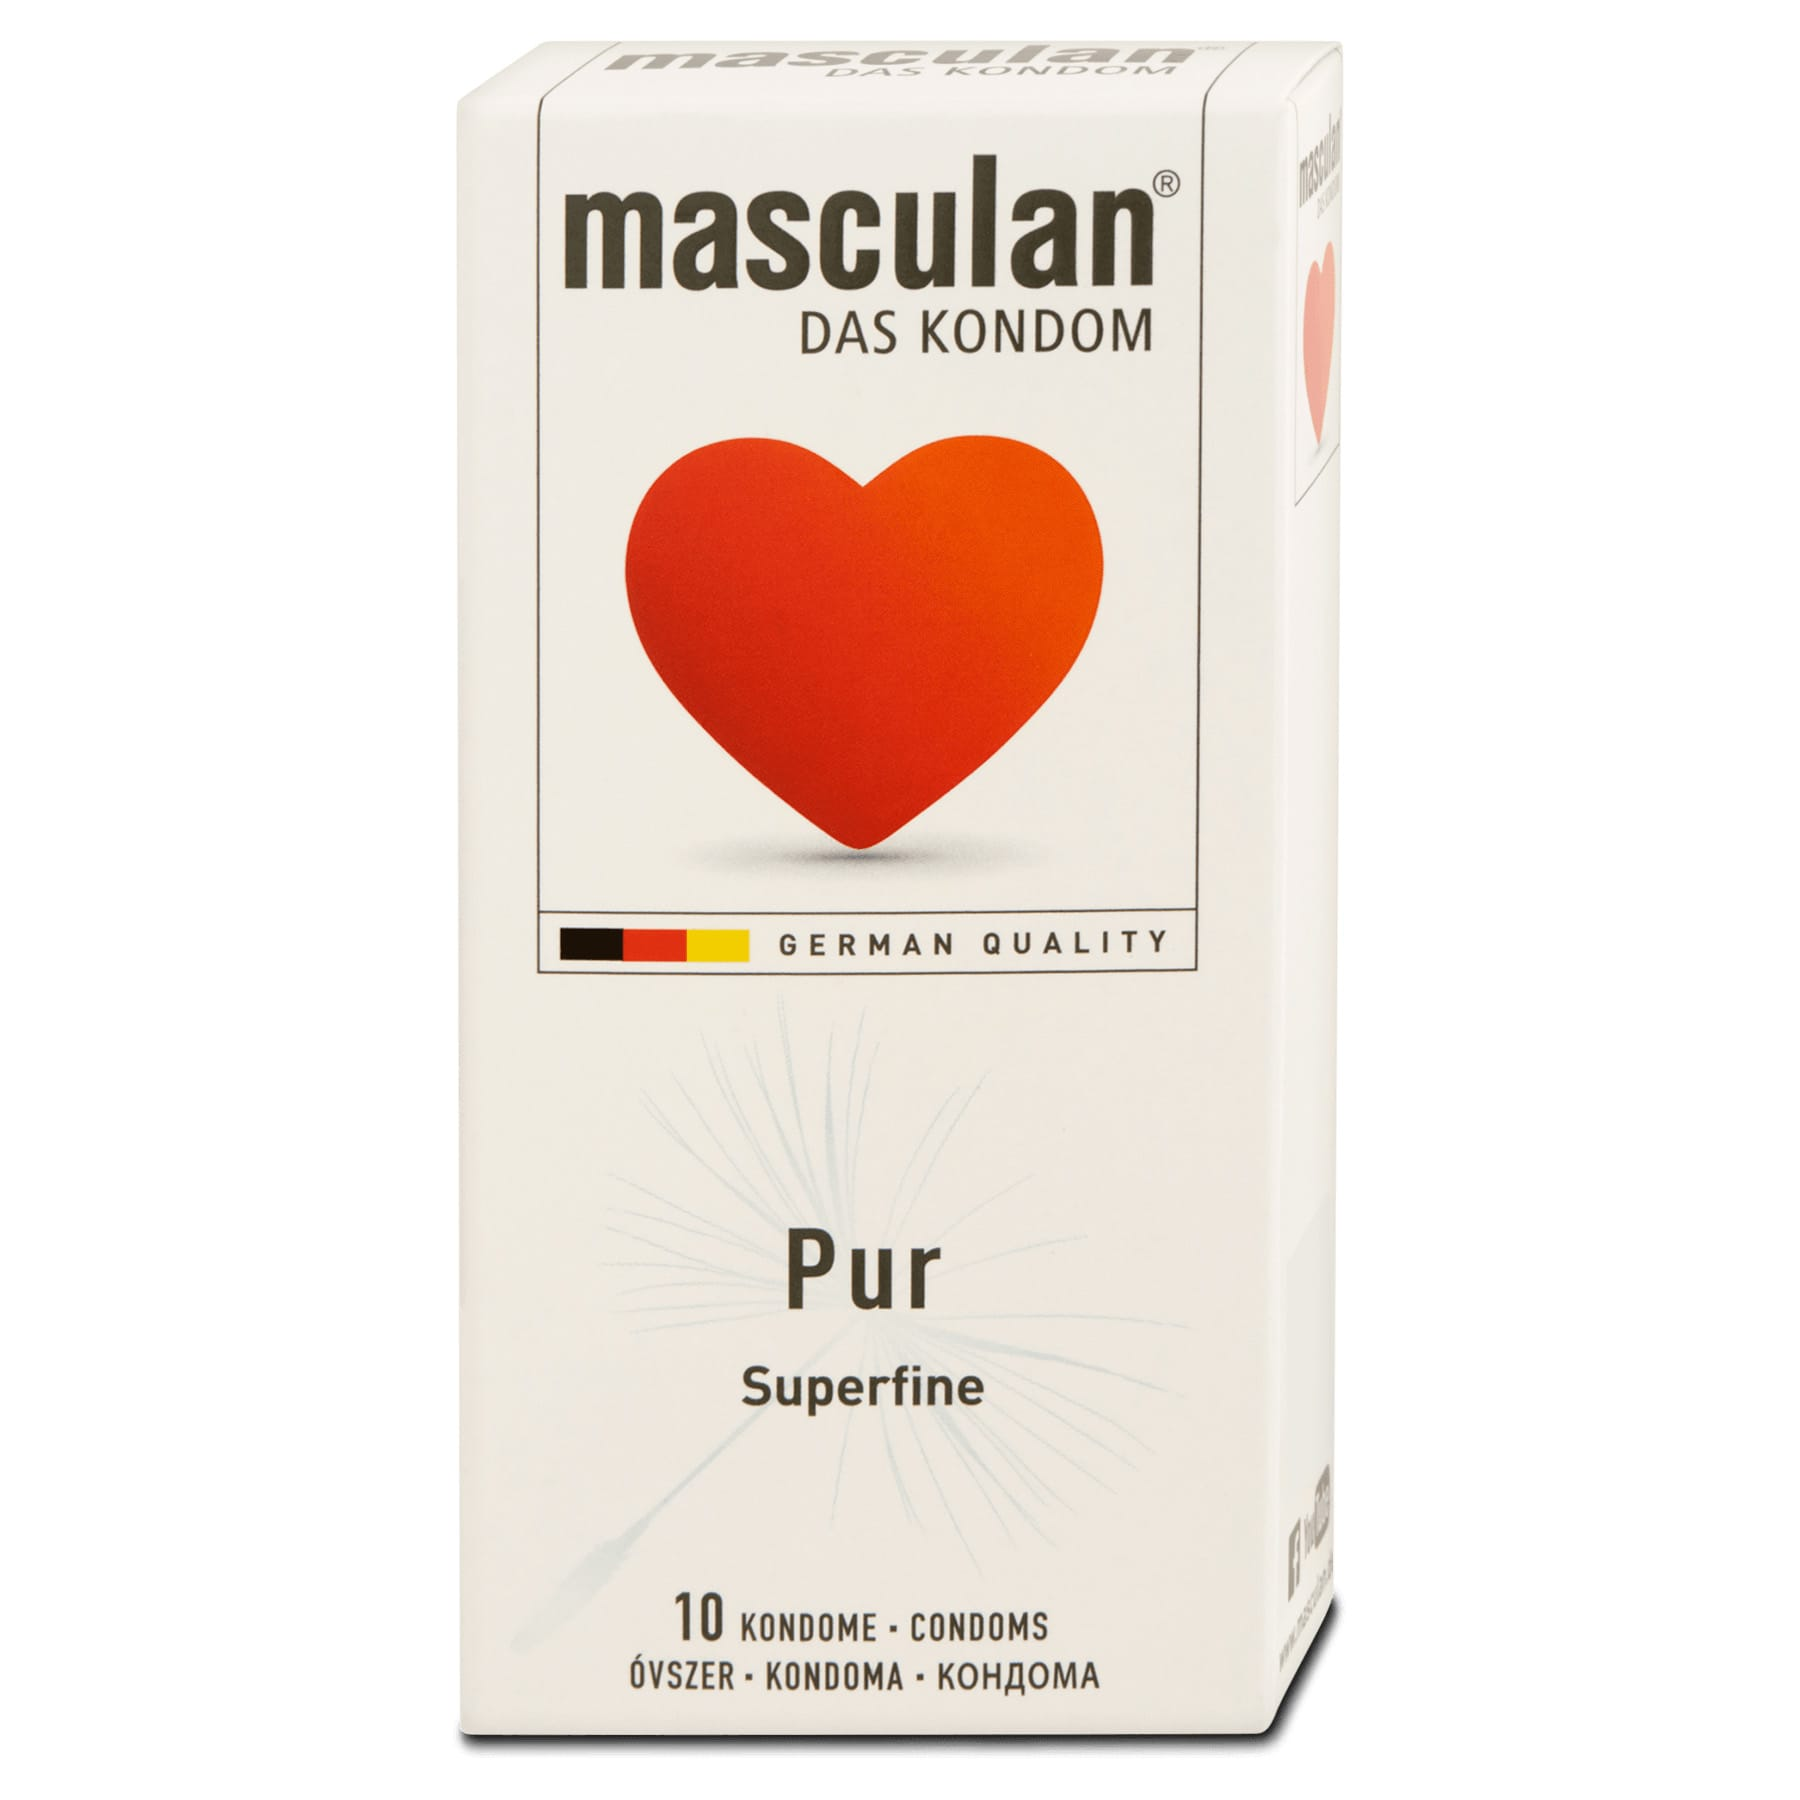 Masculan Pur Superfine 10-pack